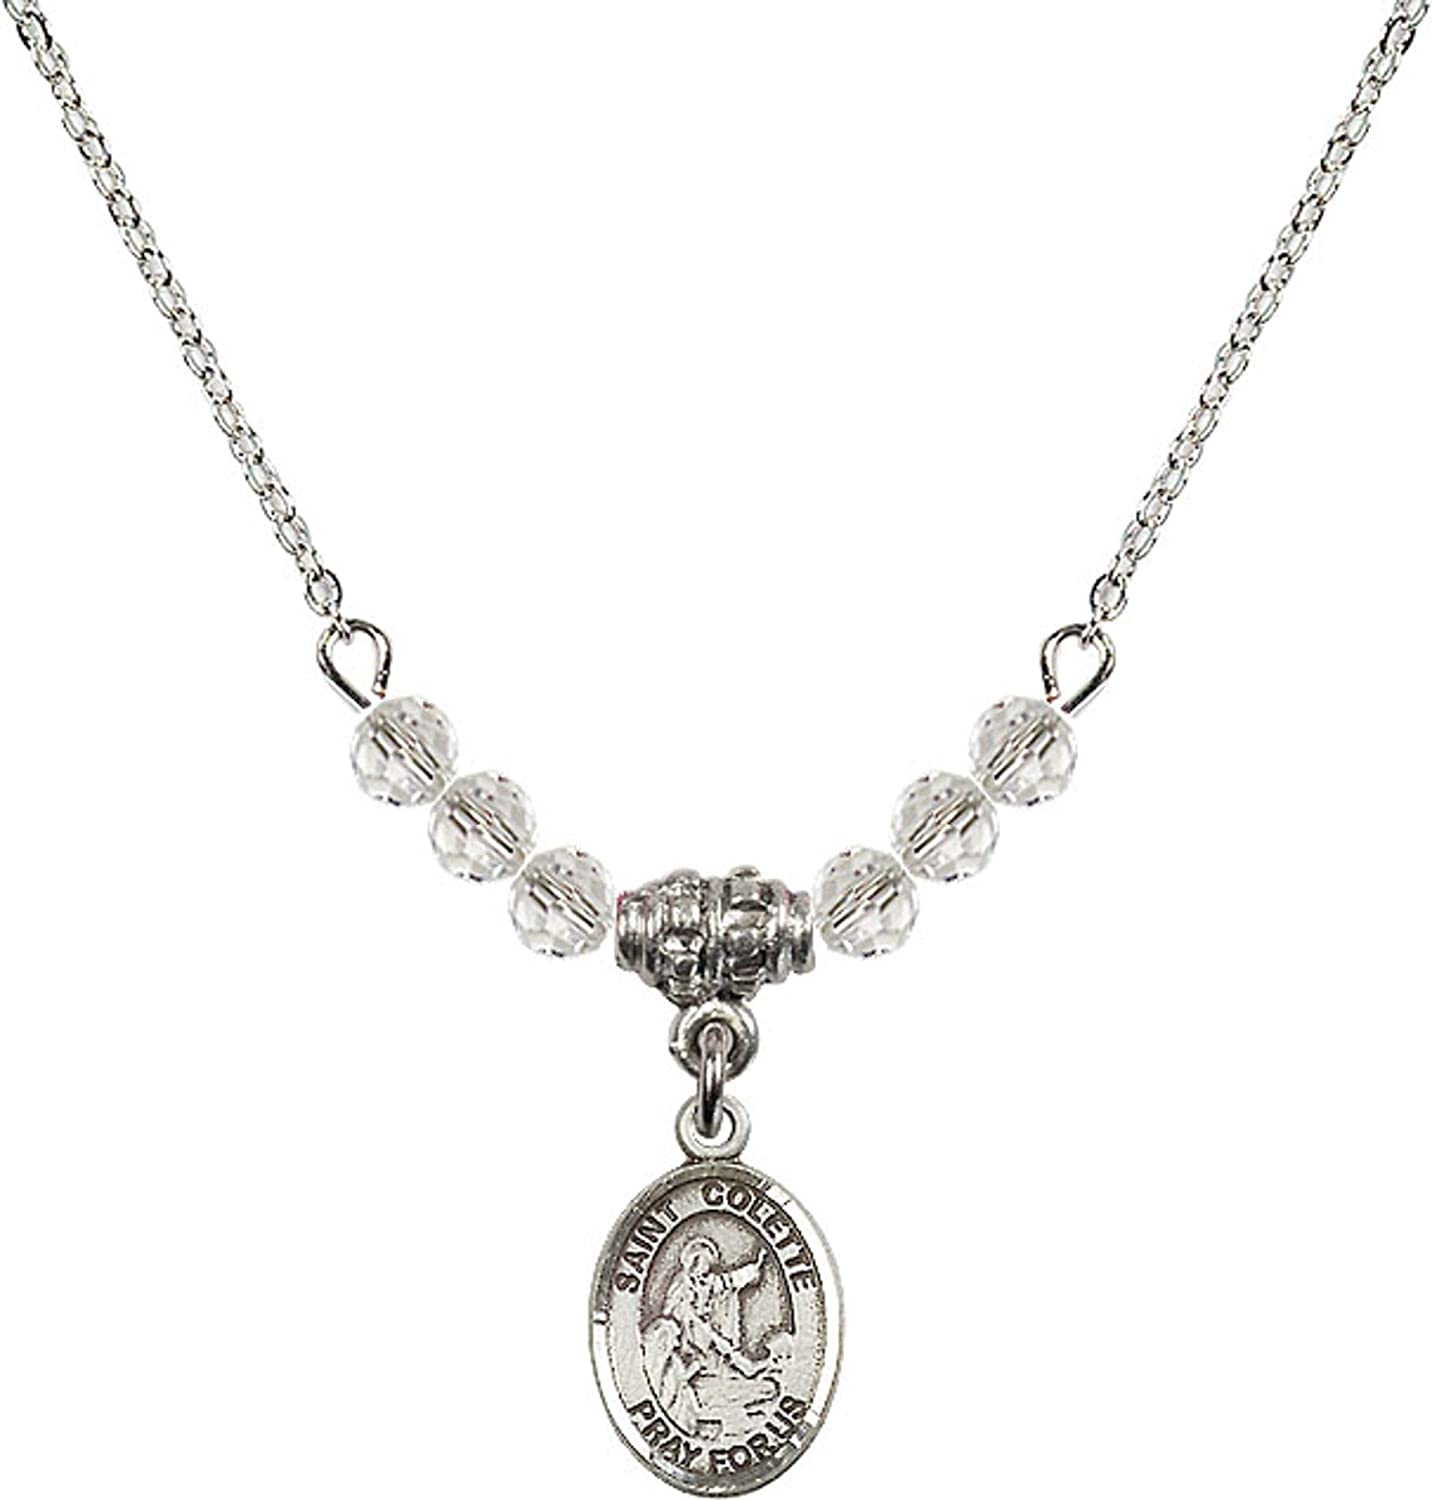 Bonyak Jewelry 18 Inch Rhodium Plated Necklace w// 4mm White April Birth Month Stone Beads and Saint Colette Charm